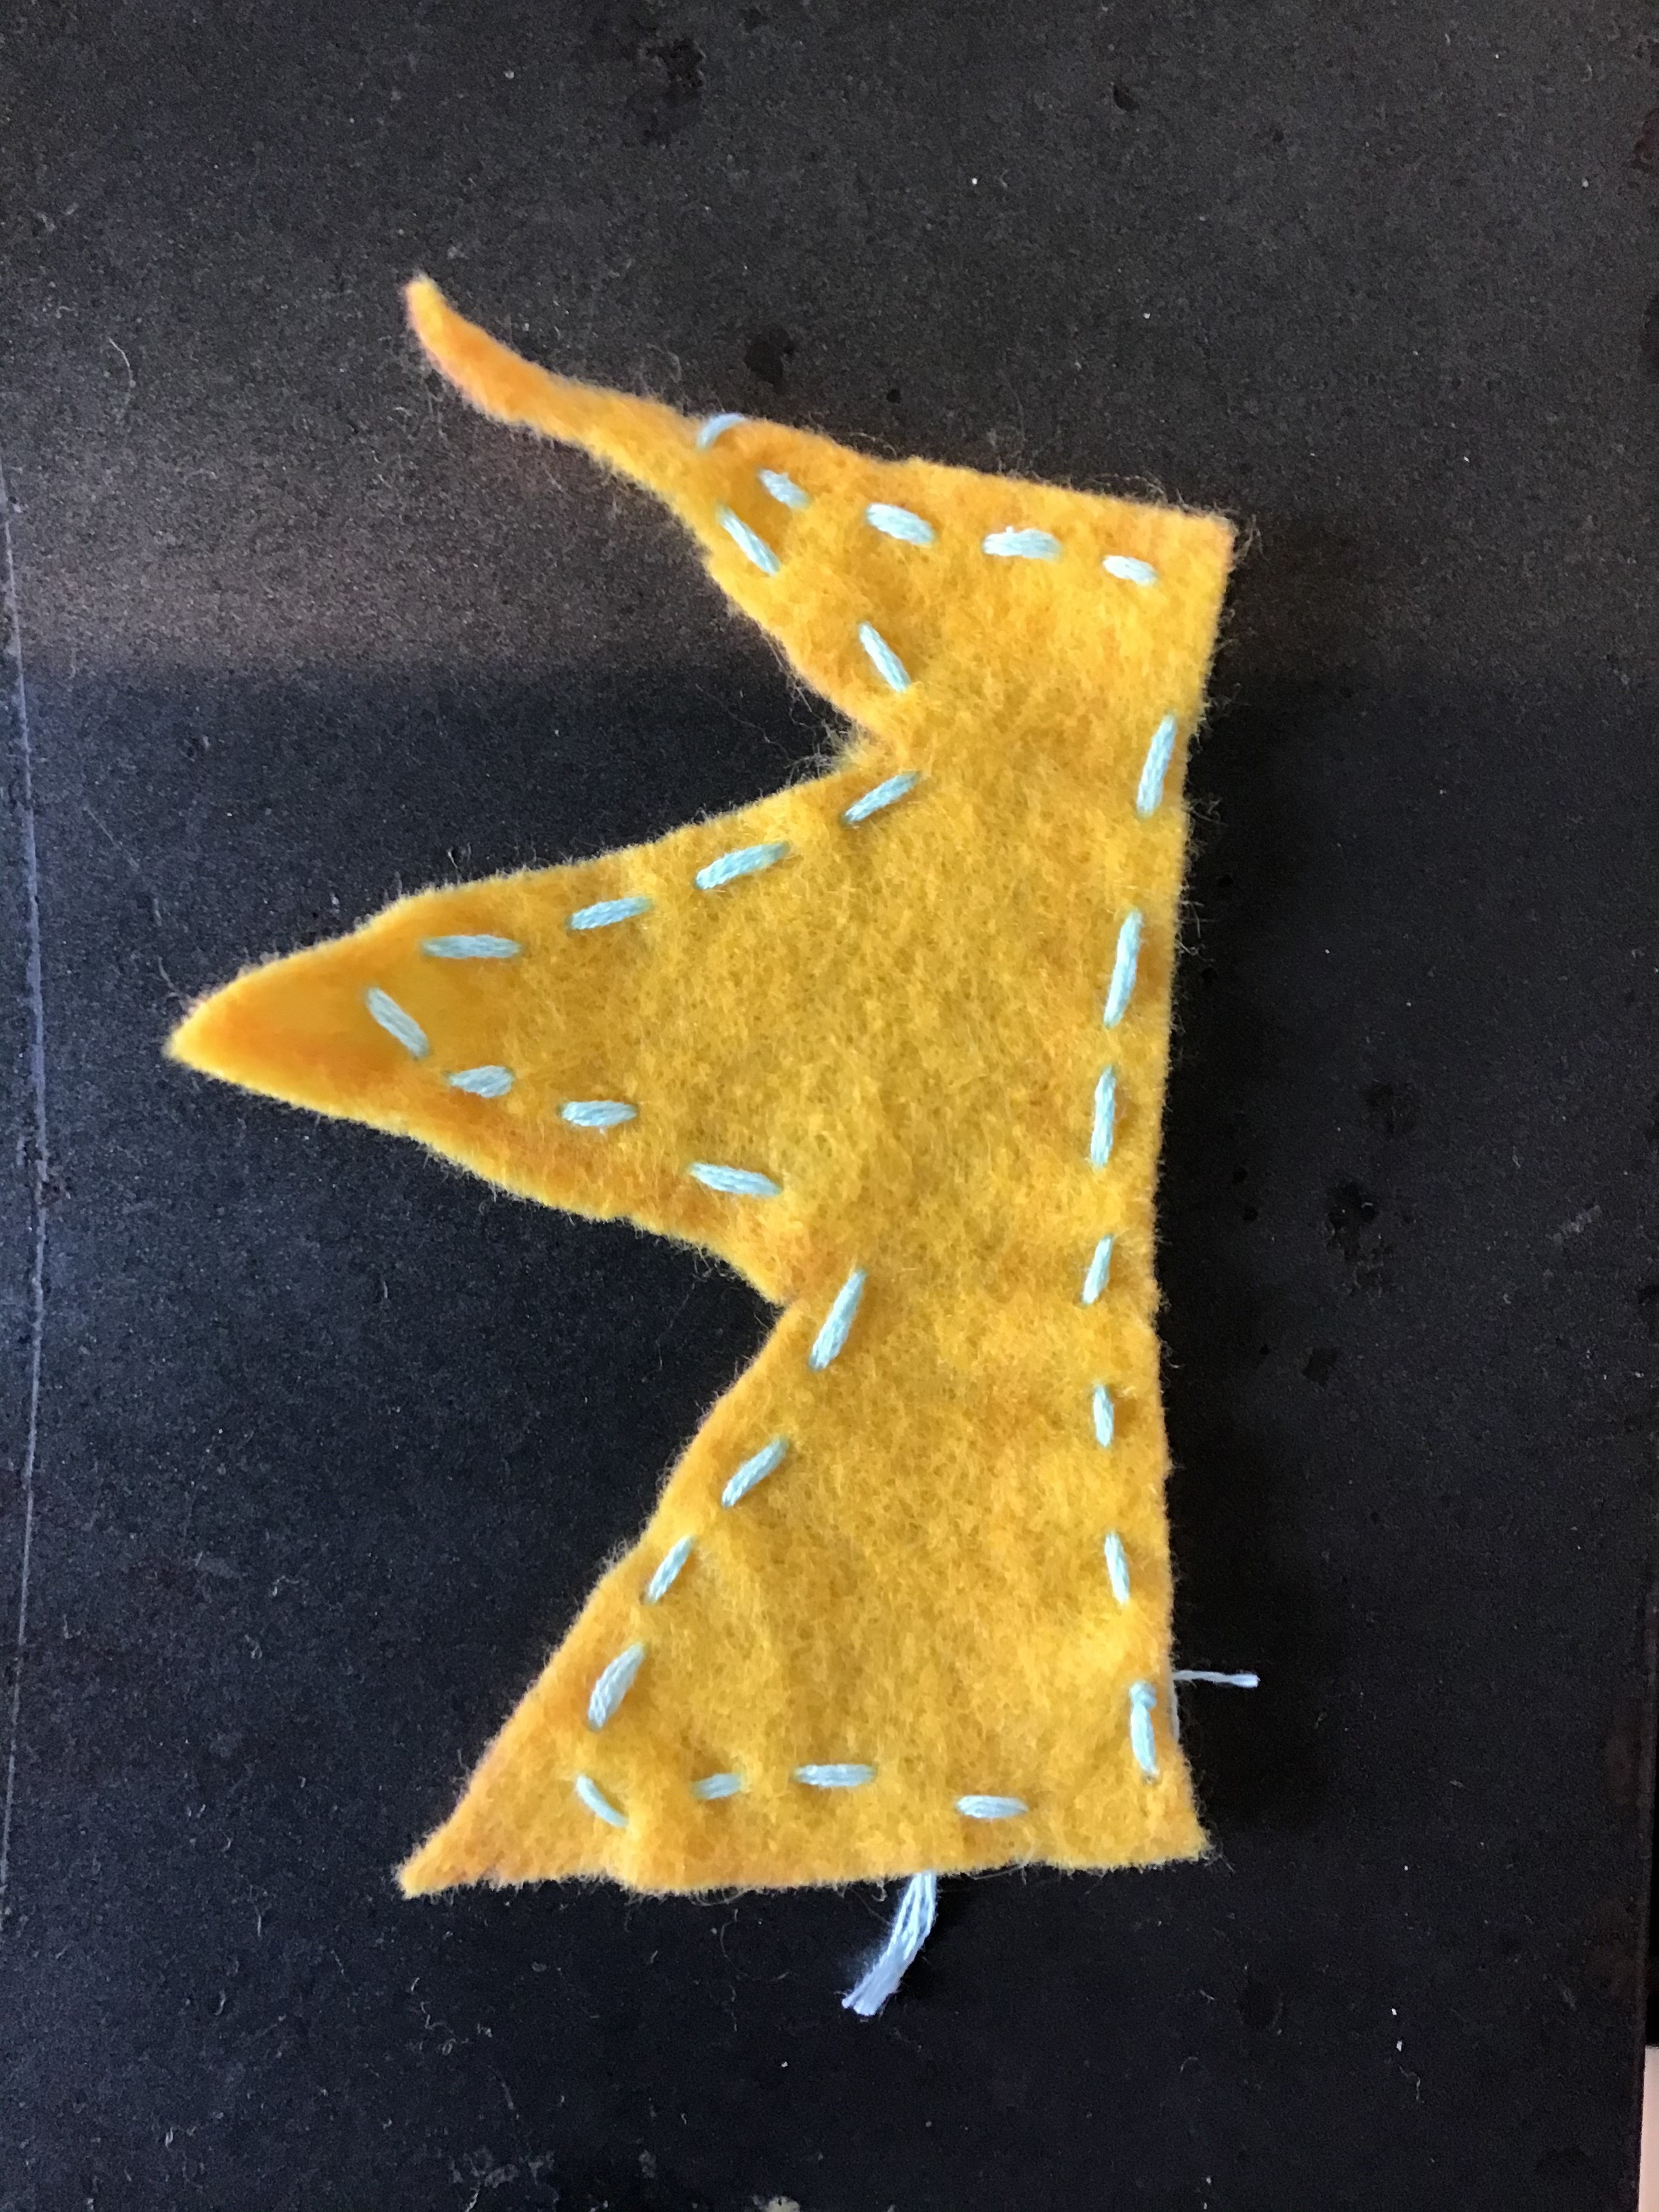 Sewing the Running Stitch